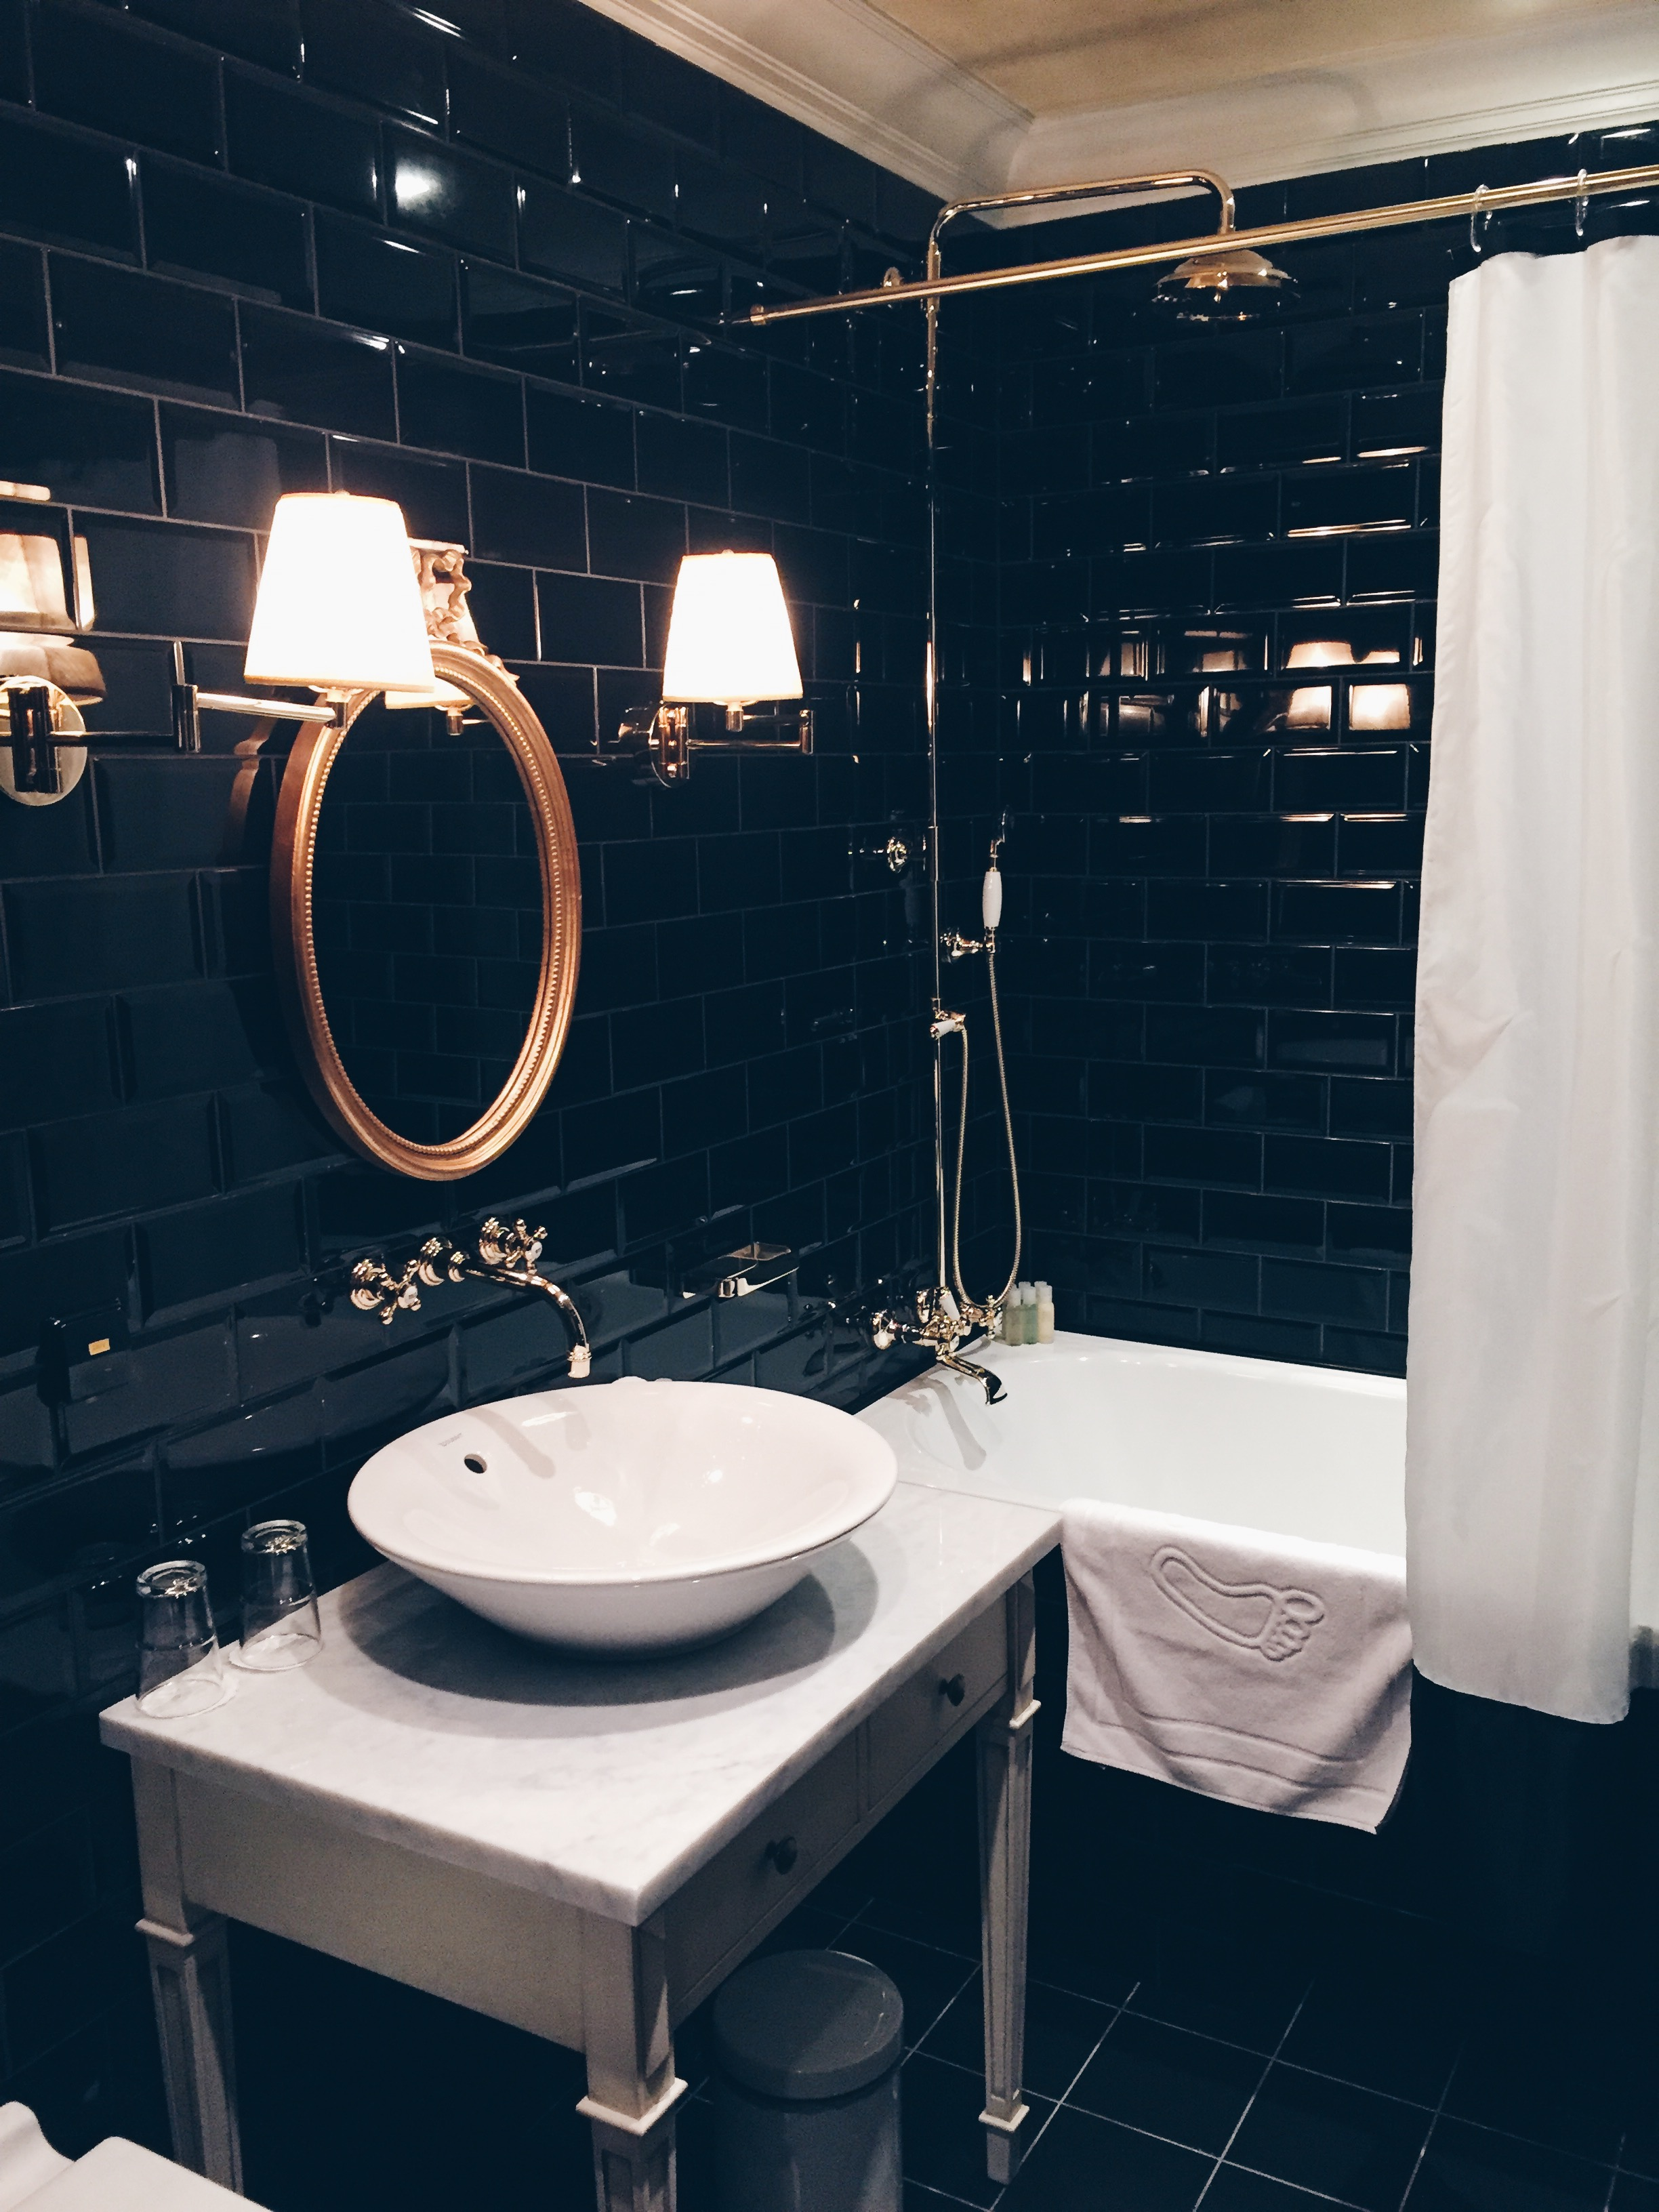 Bathroom inspo: floor to ceiling black subway tile with brass accents (swoon).